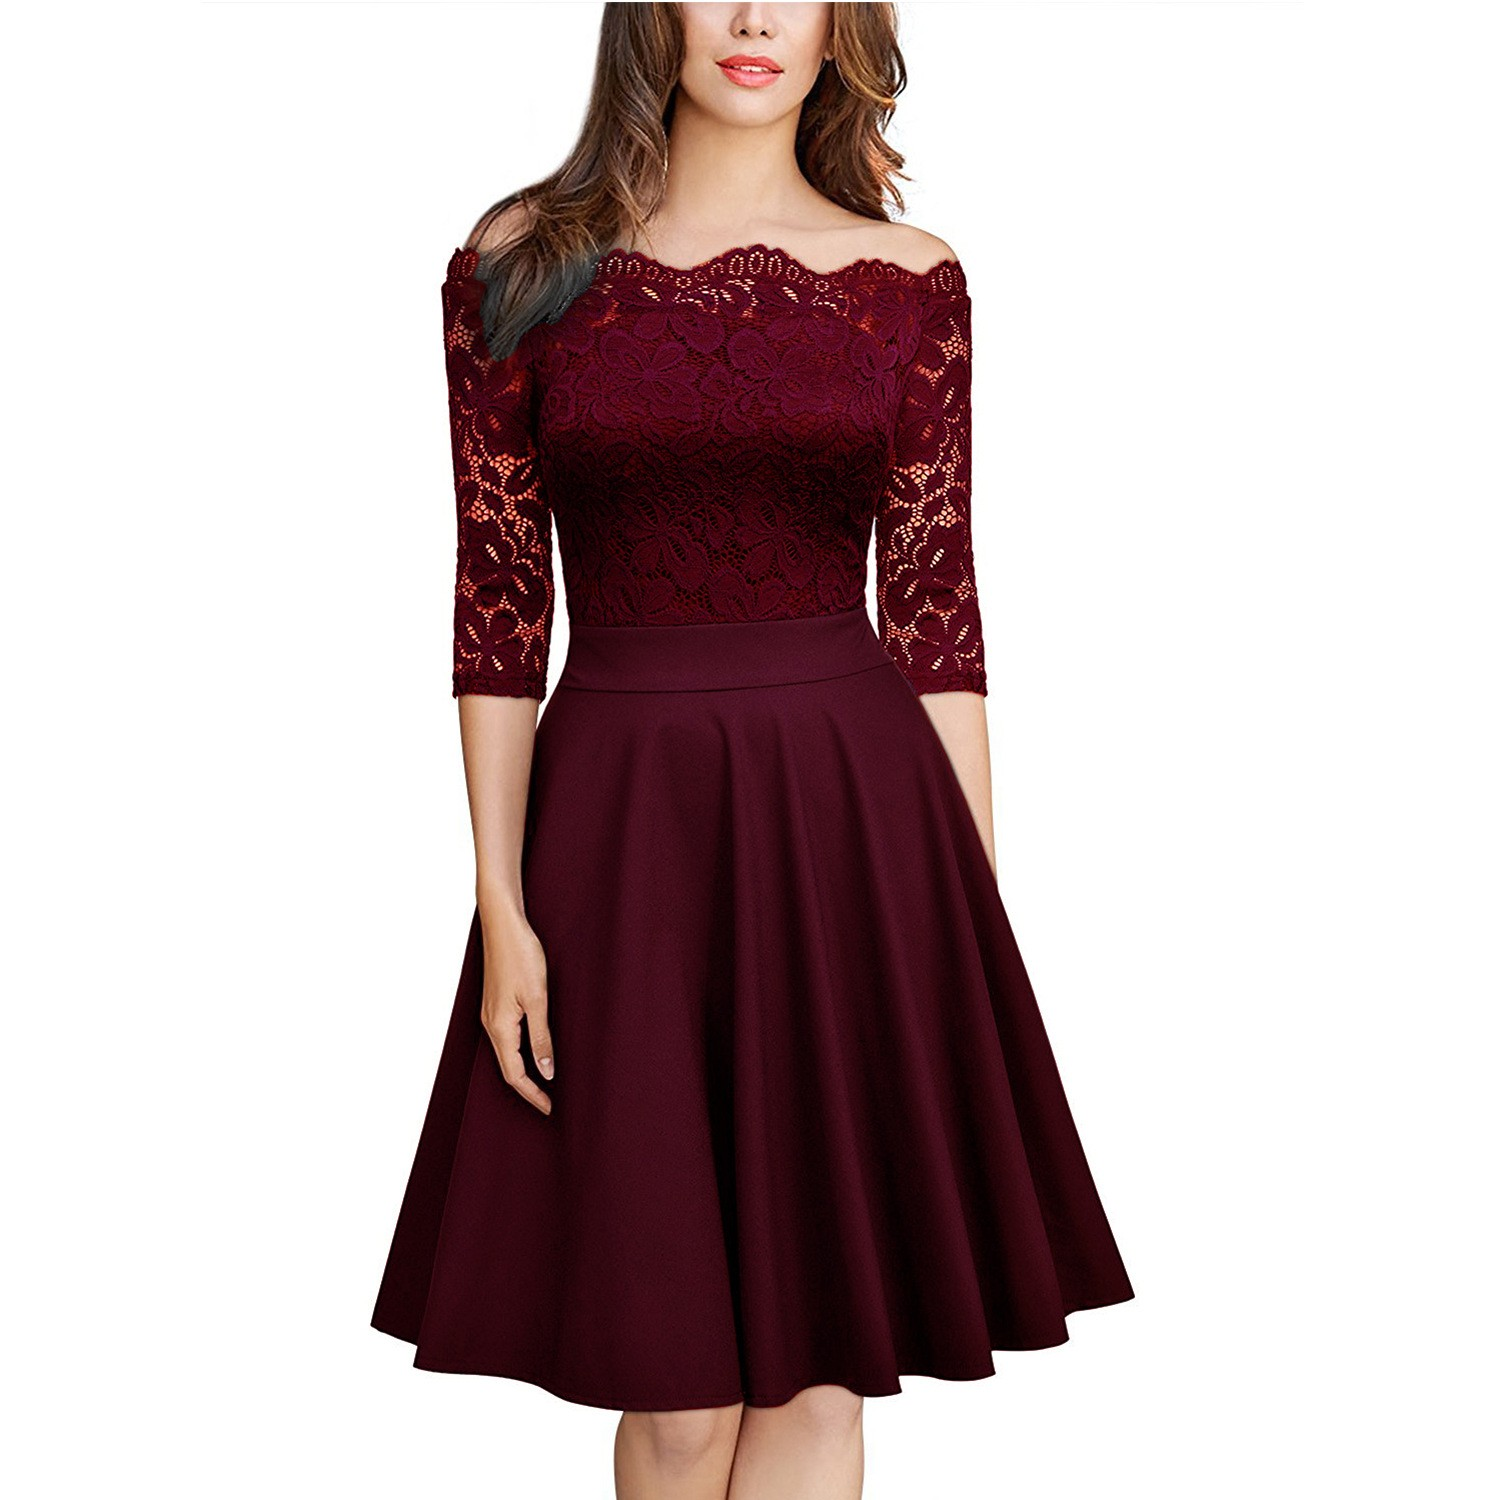 GSS9353 Dress red,blue $21.08 50XXXX6646446-BT2LV217-A1